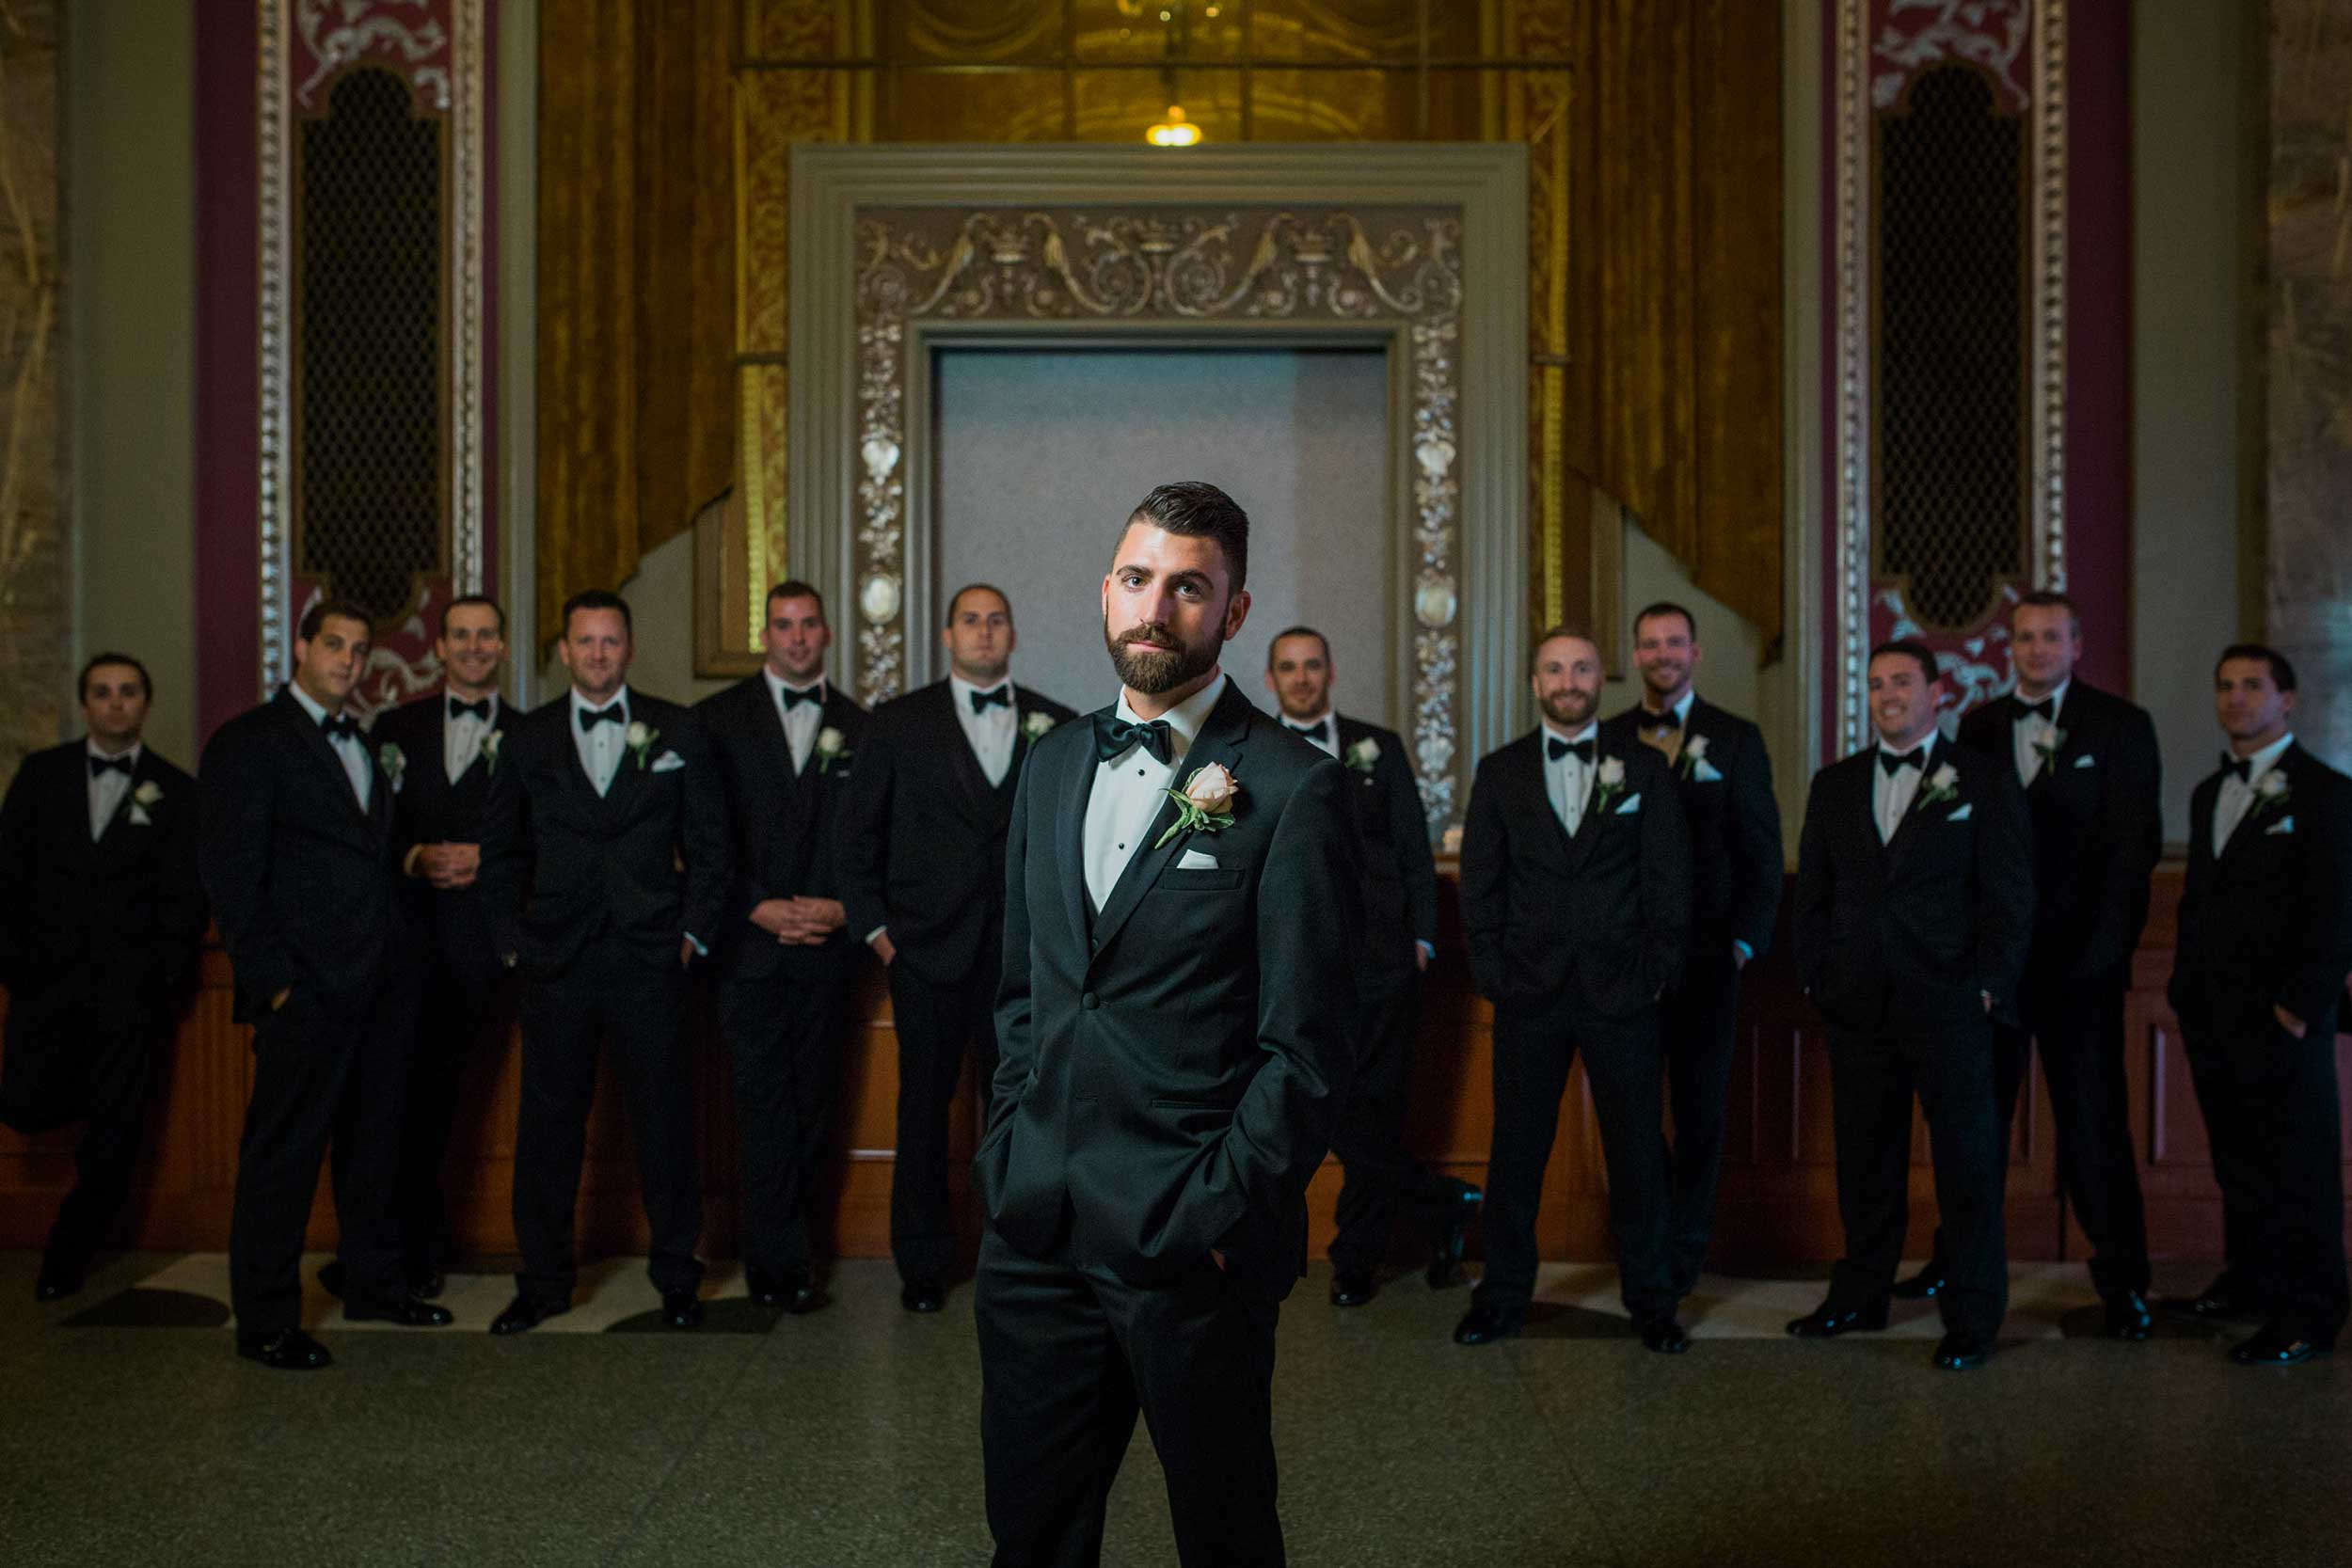 Groom's portrait at Powers Auditorium in Youngstown, OH.